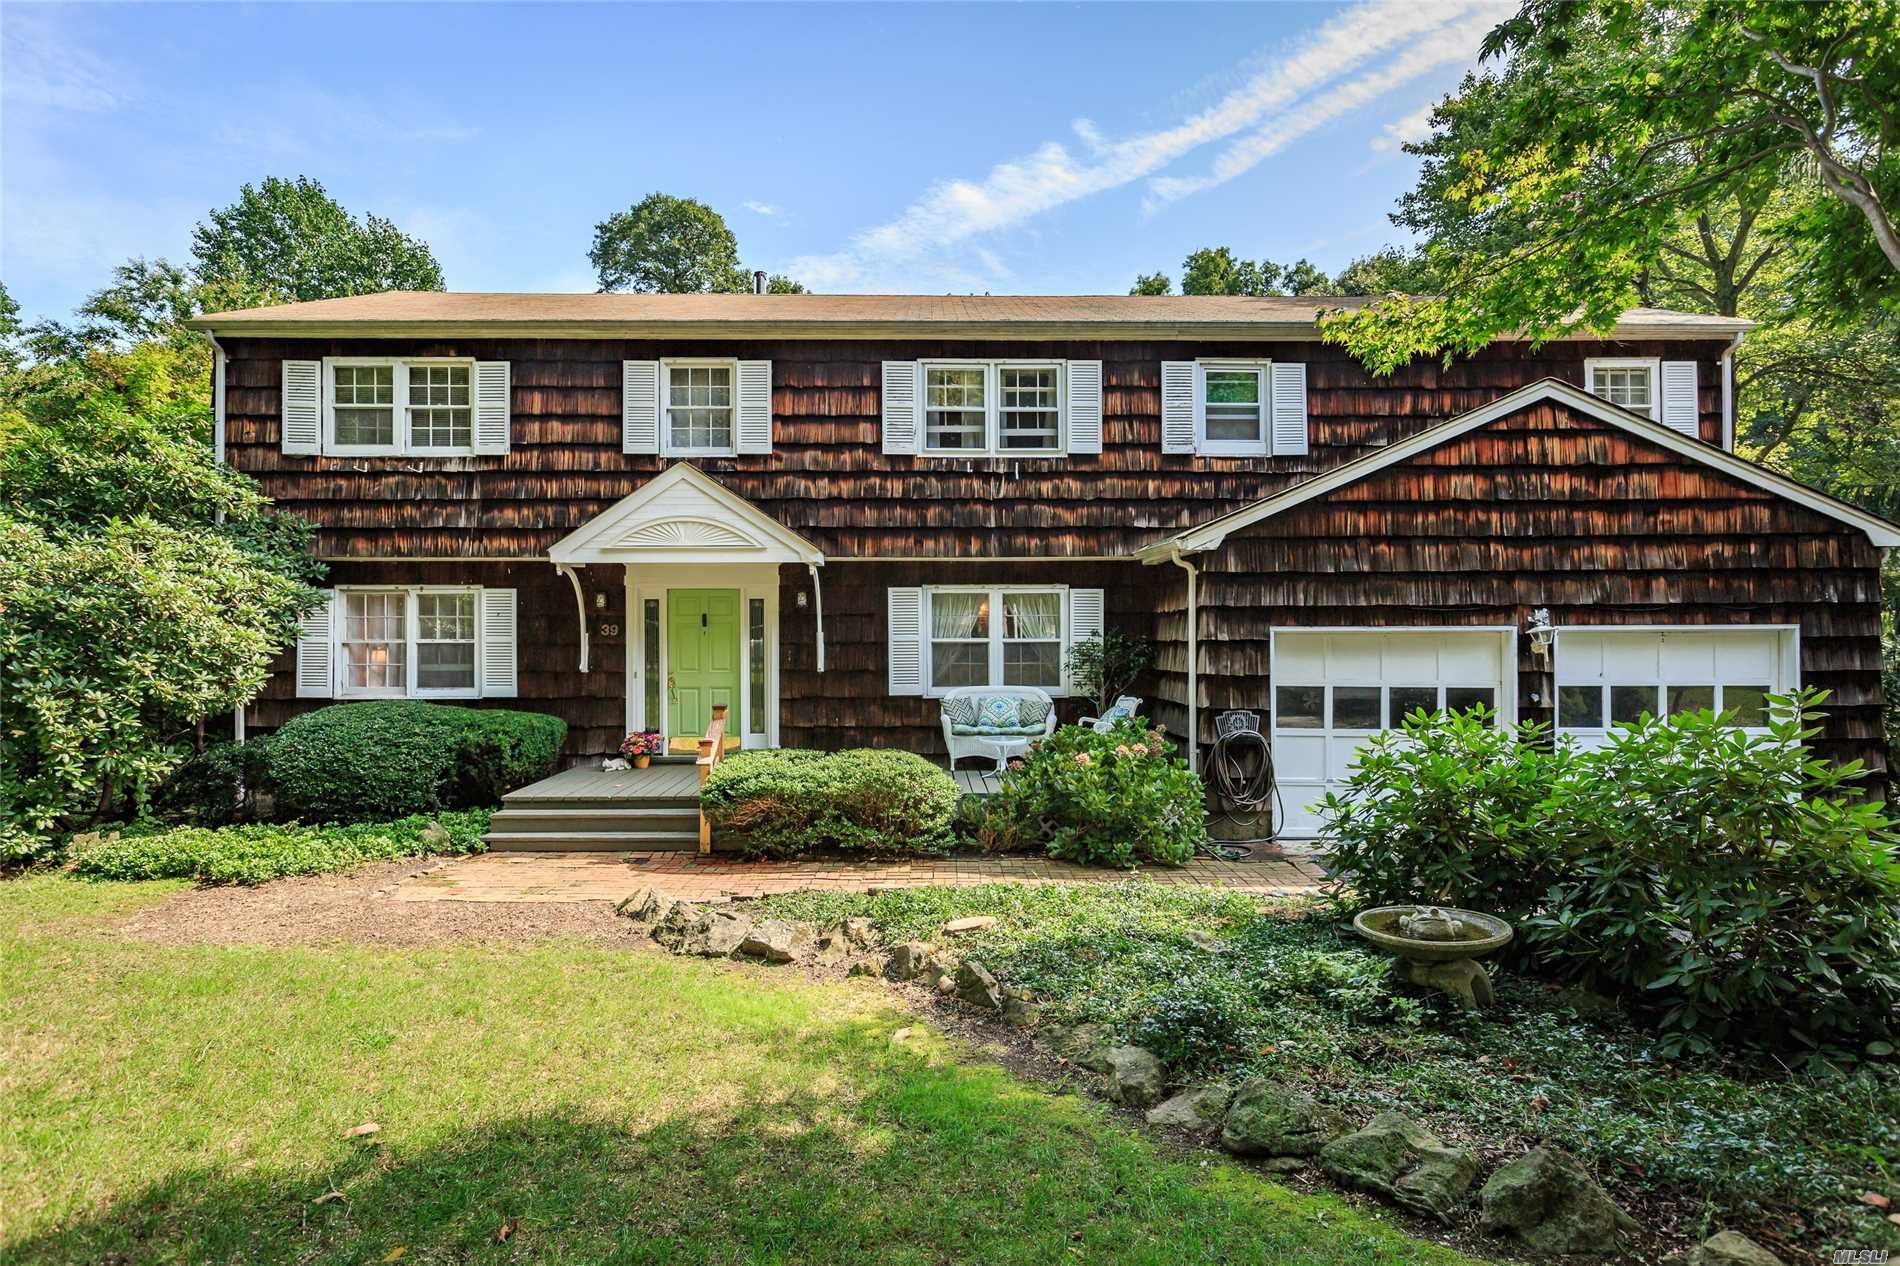 New To Market! Large Colonial Featuring 6 Bedrooms, 3.5 Baths On Half Acre- Quiet Mid Block W/In Ground Pool! Entry Foyer, Eik W/Granite, Formal Dining, Den W/Fpl, French Doors To Living Rm. Master W/Bath. Enjoy The Day Relaxing By Your Pool In Nature Lovers Backyard Or Take A Walk To The Beach To Enjoy Swimming, Sunbathing, Sailing, Kayaking & Breathtaking Sunsets!!Private Beach & Mooring W/Assoc Membership. Come Own A Piece Of Paradise!! Opportunity To Update & Make Your Dream Home!